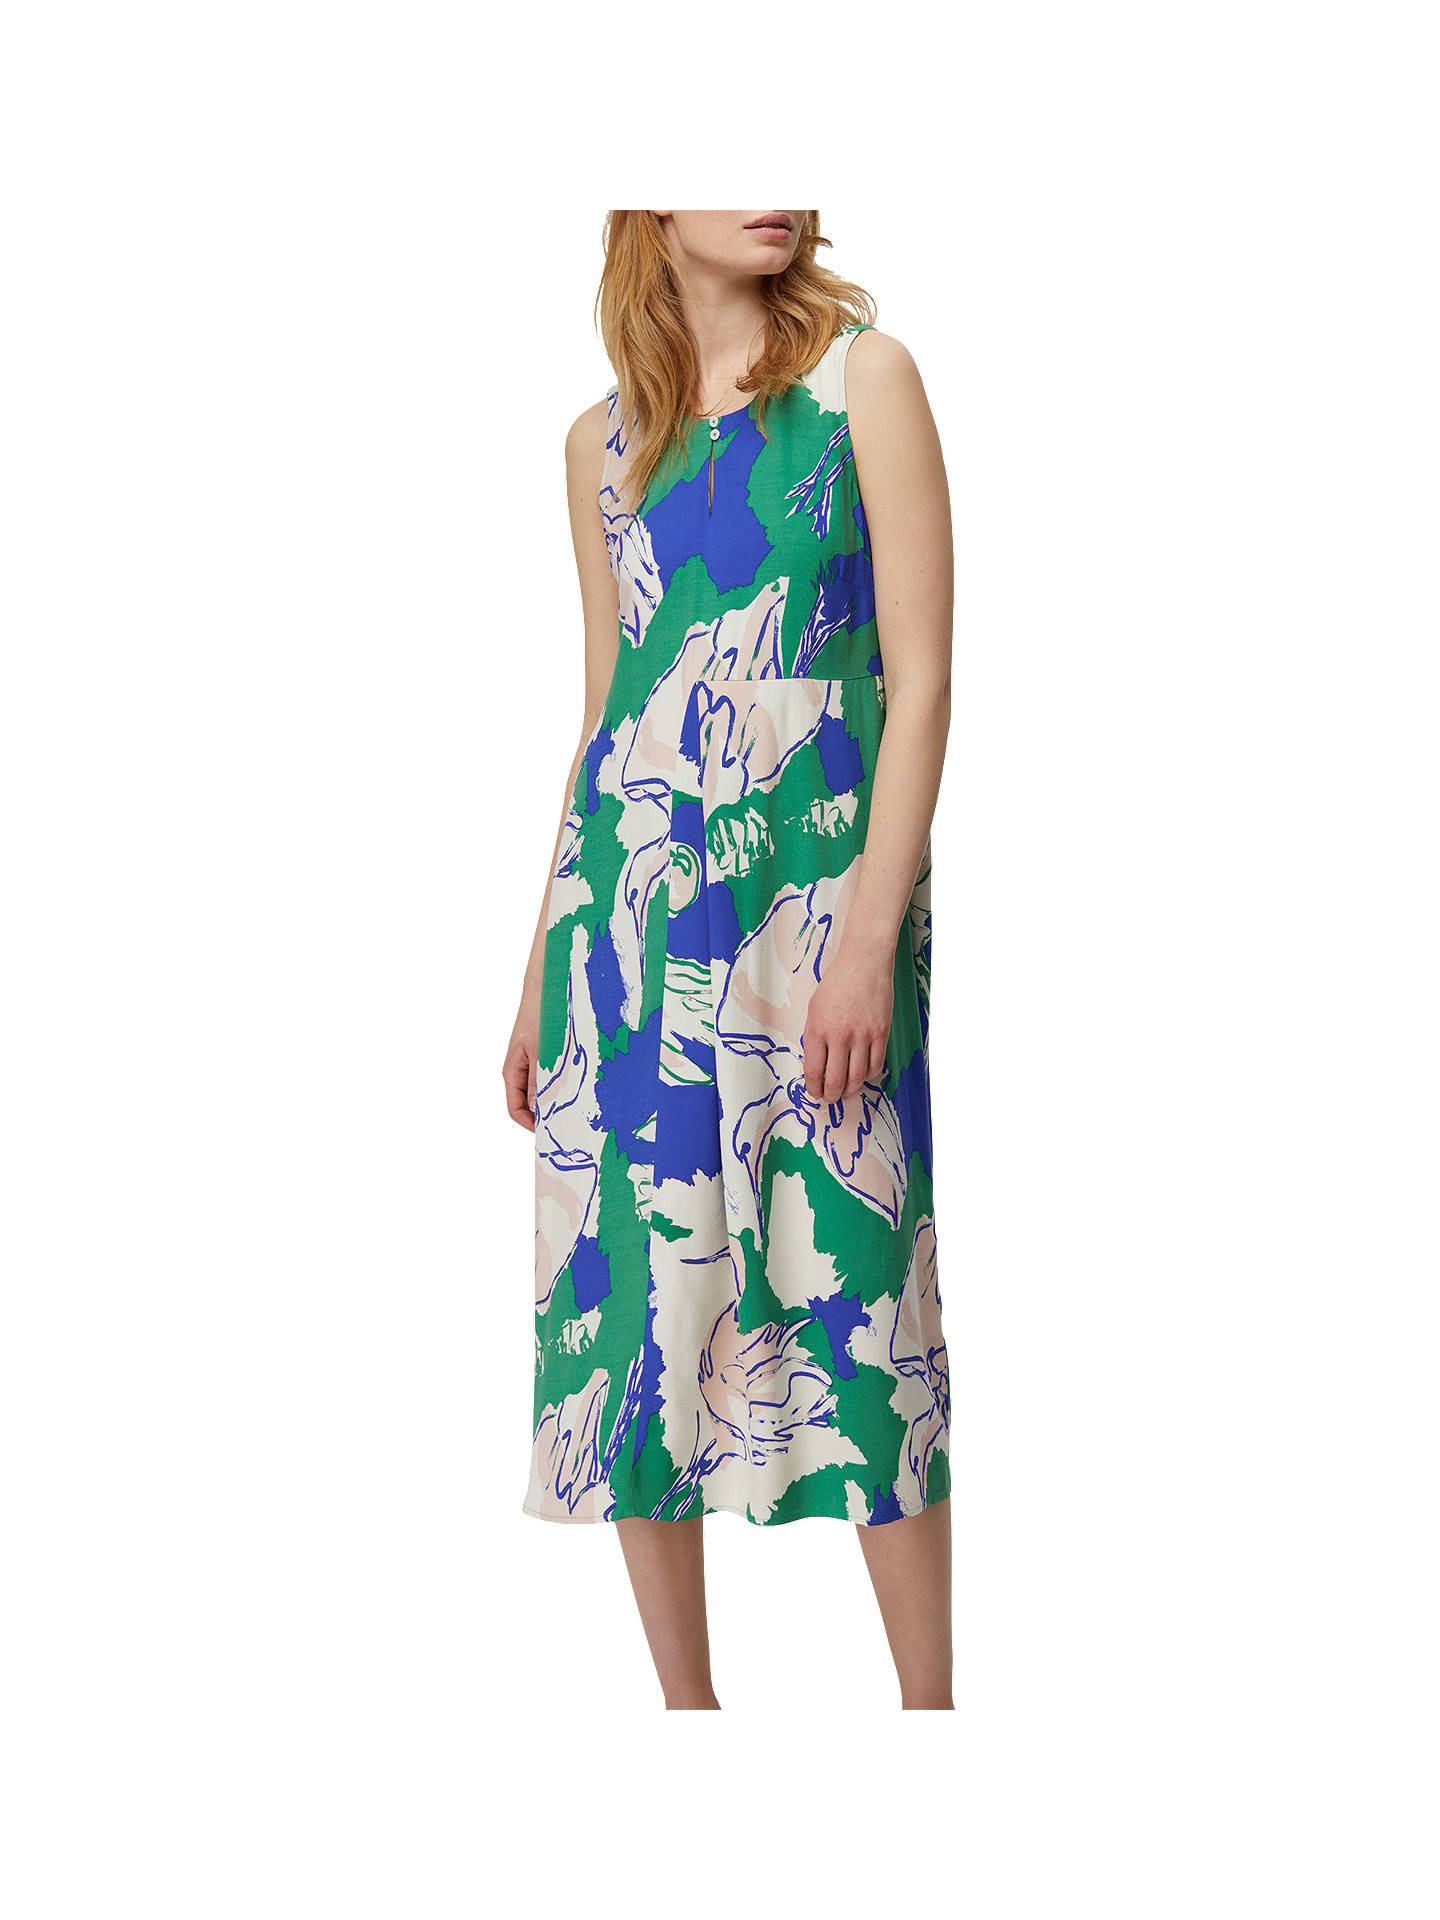 White Stuff Painted Crane Dress Green 6 Online At Johnlewis